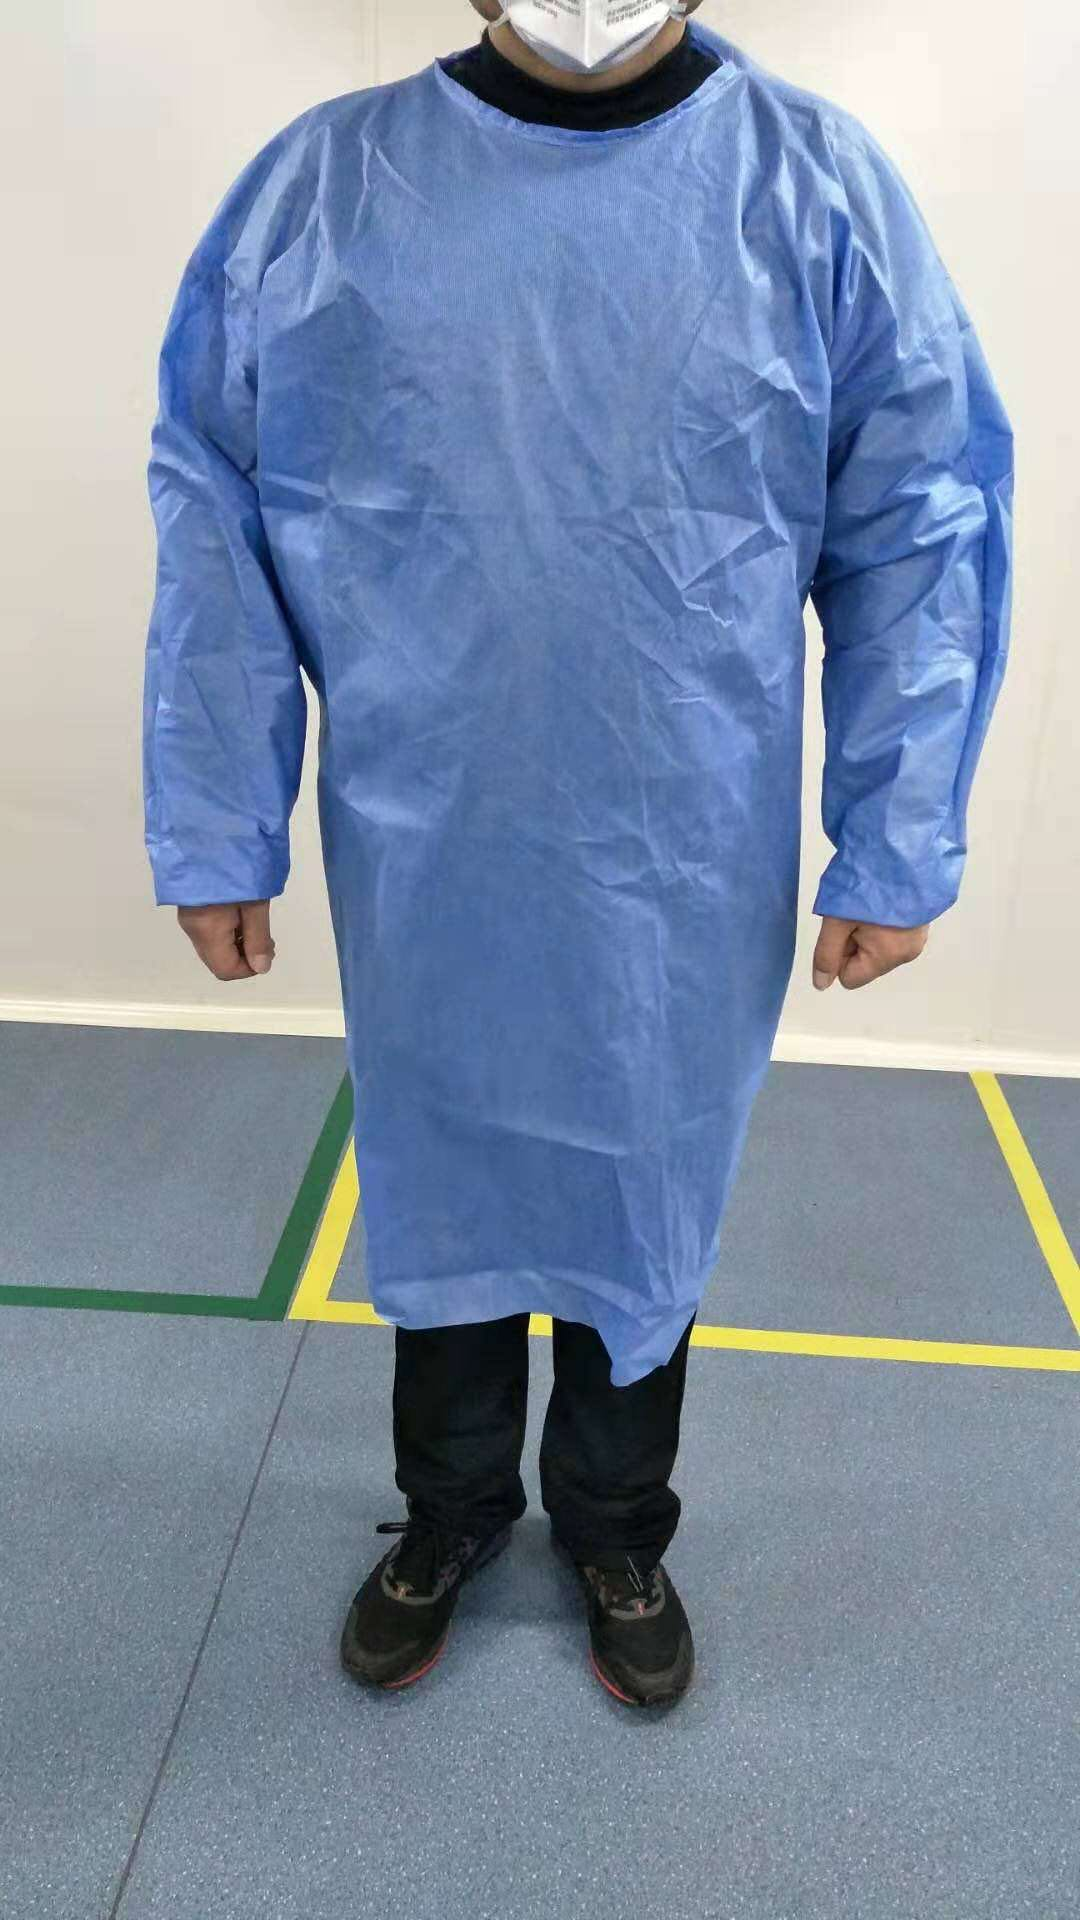 PP SMS Hospital Gowns – High Quality